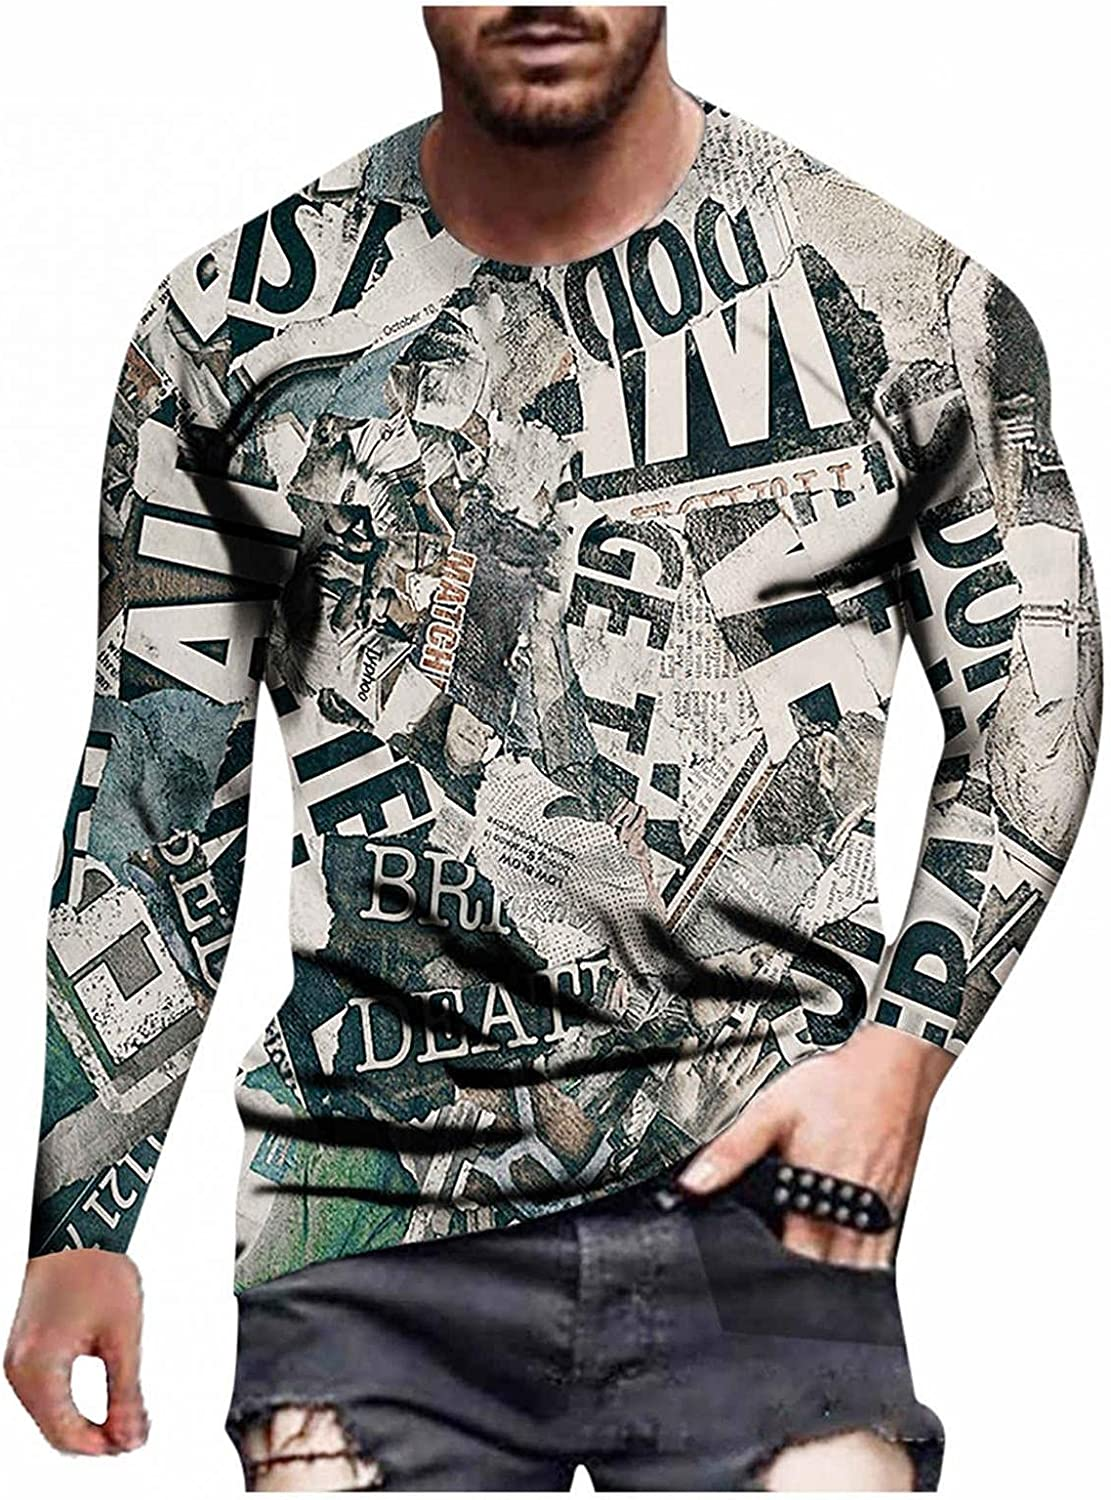 Aayomet Long Sleeve Tee Shirts for Men Pattern Print Streetwear Tops Bodybuilding Muscle Fashion Casual Pullover Shirts